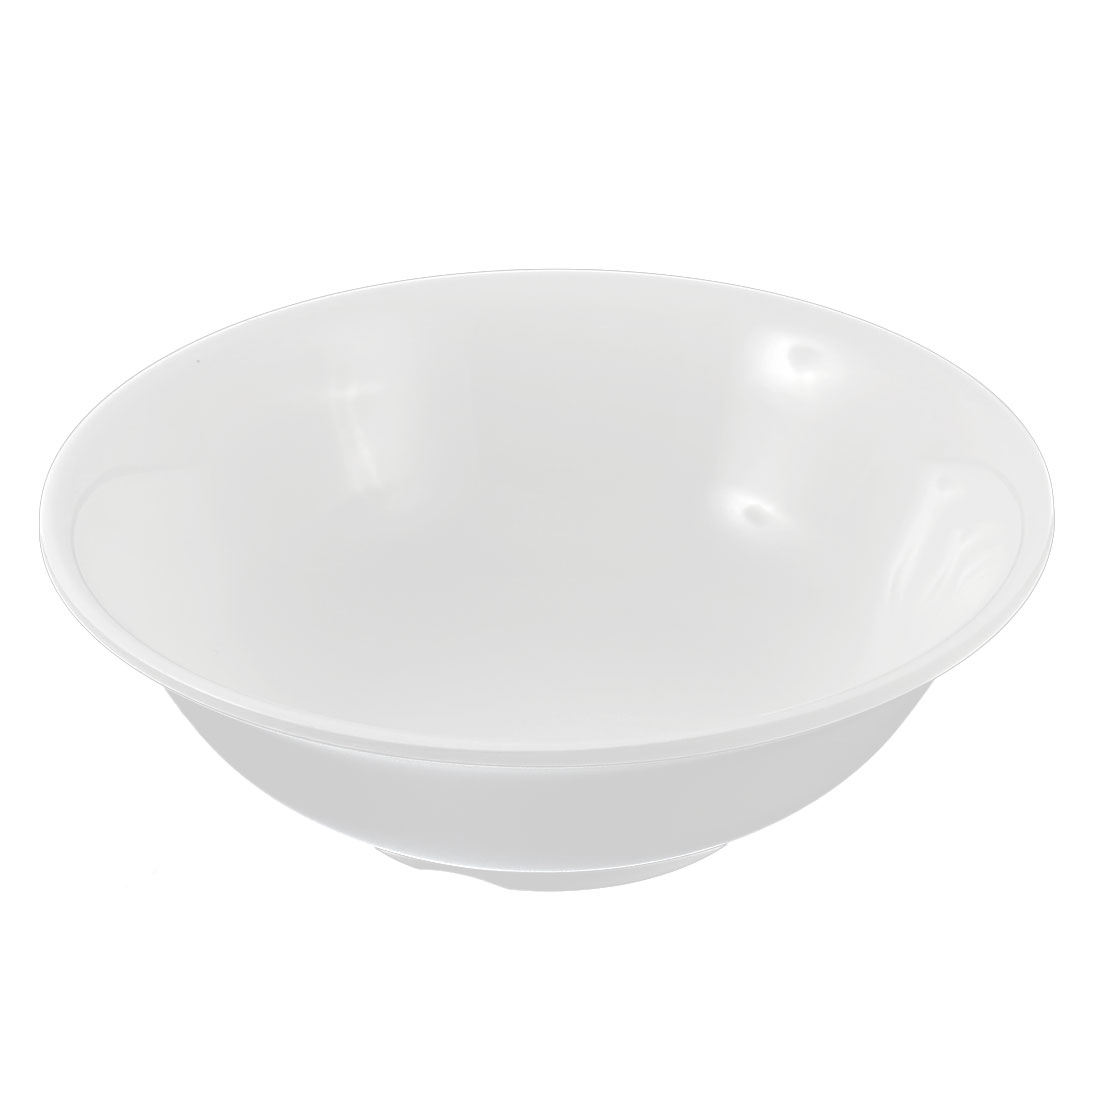 "Restaurant Plastic Lunch Dinner Fruit Rice Bowl Container White 7"" Dia"